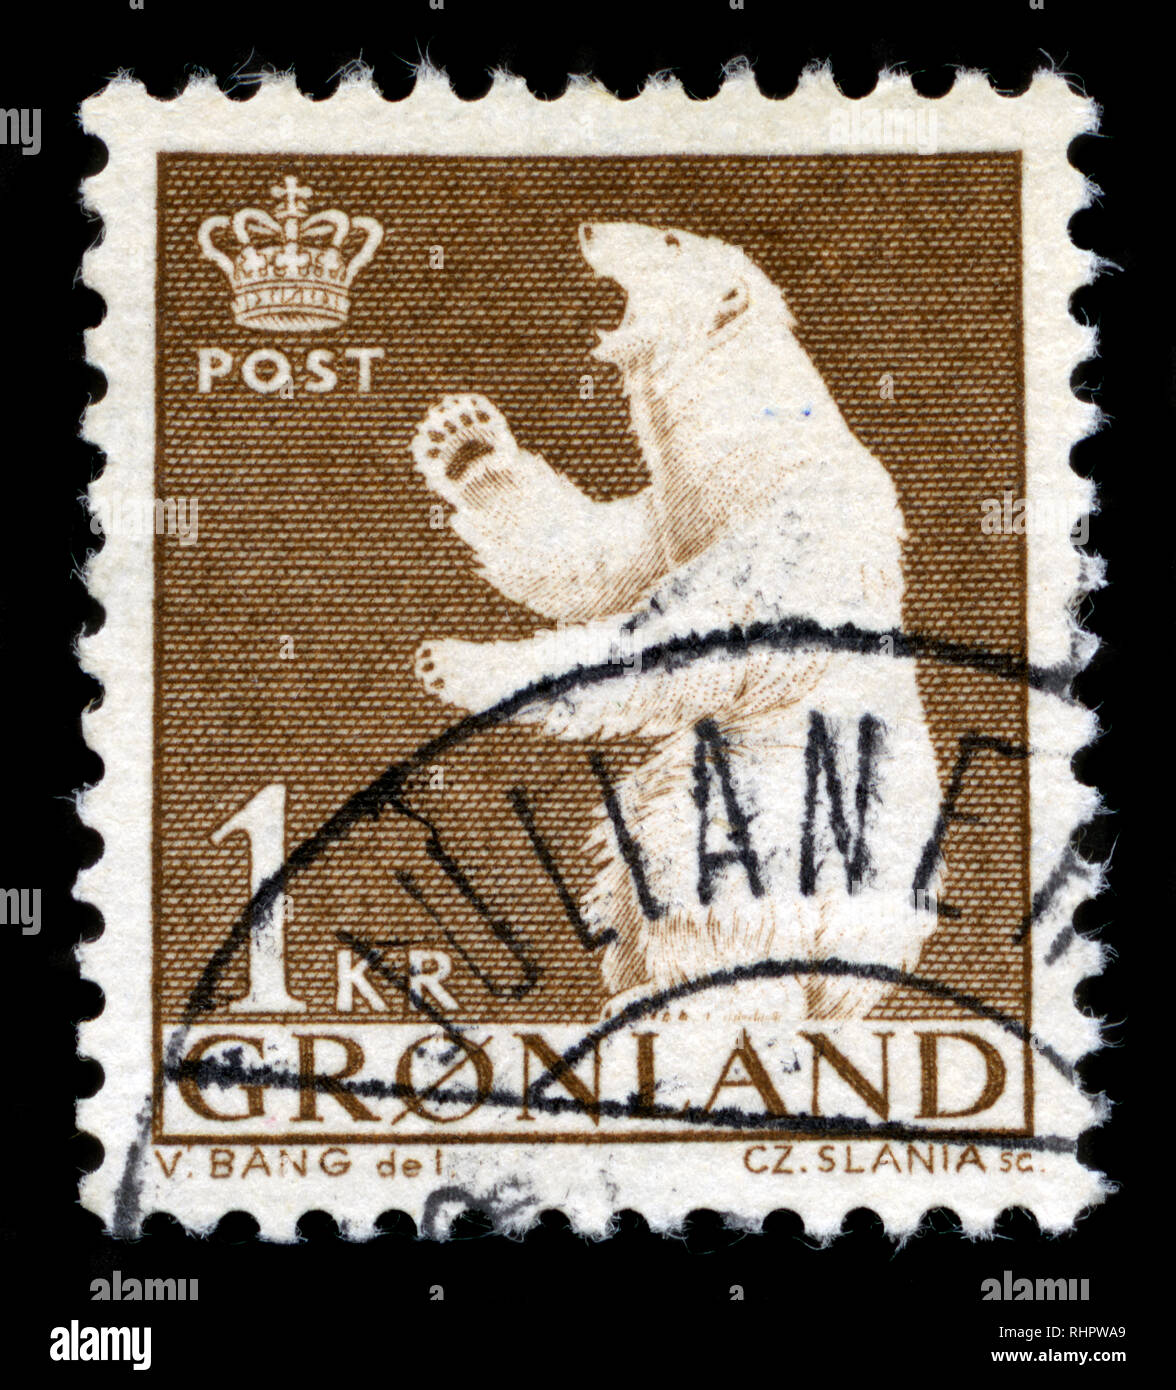 Postage Stamp From Greenland In The Polar Bear Series Issued In 1963